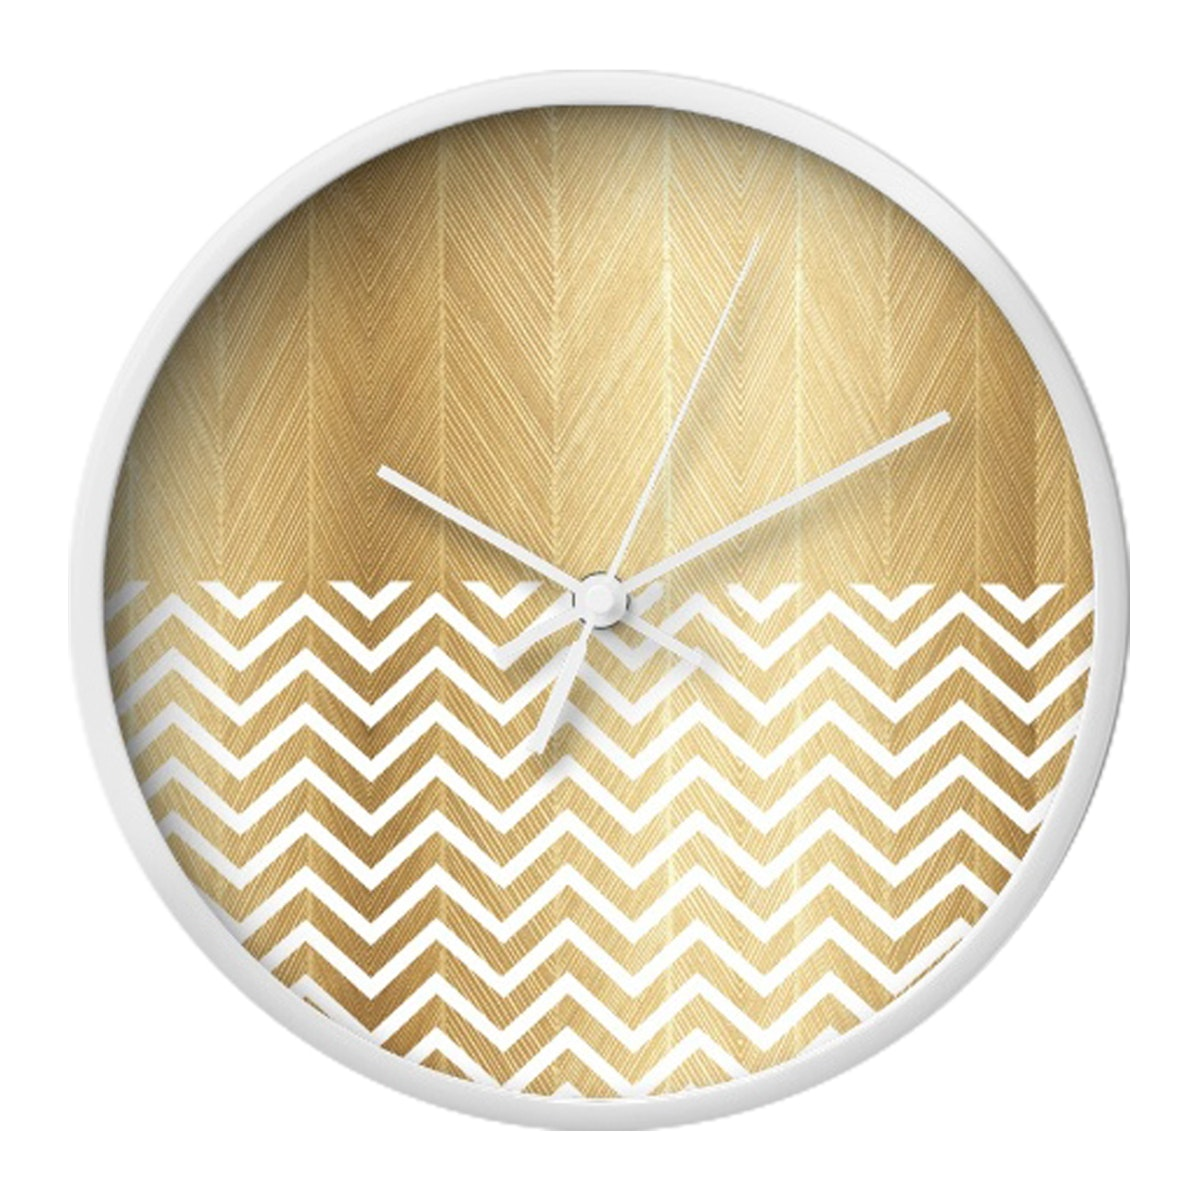 Clouds Clou Wall Clock Brown Monochrome 31x31cm